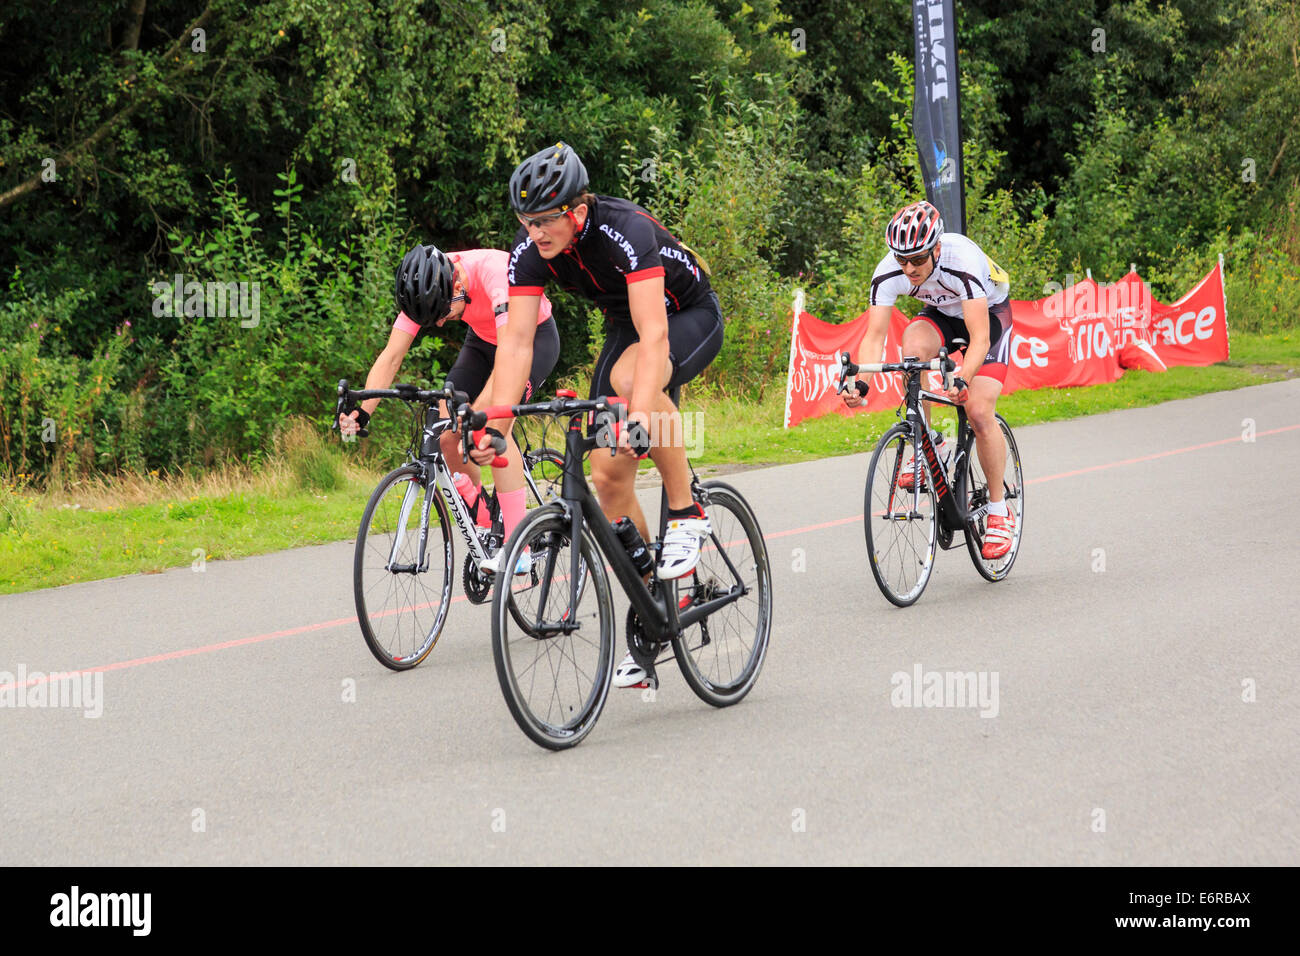 Men Racing In A Local Bike Race Organised By British Cycling At